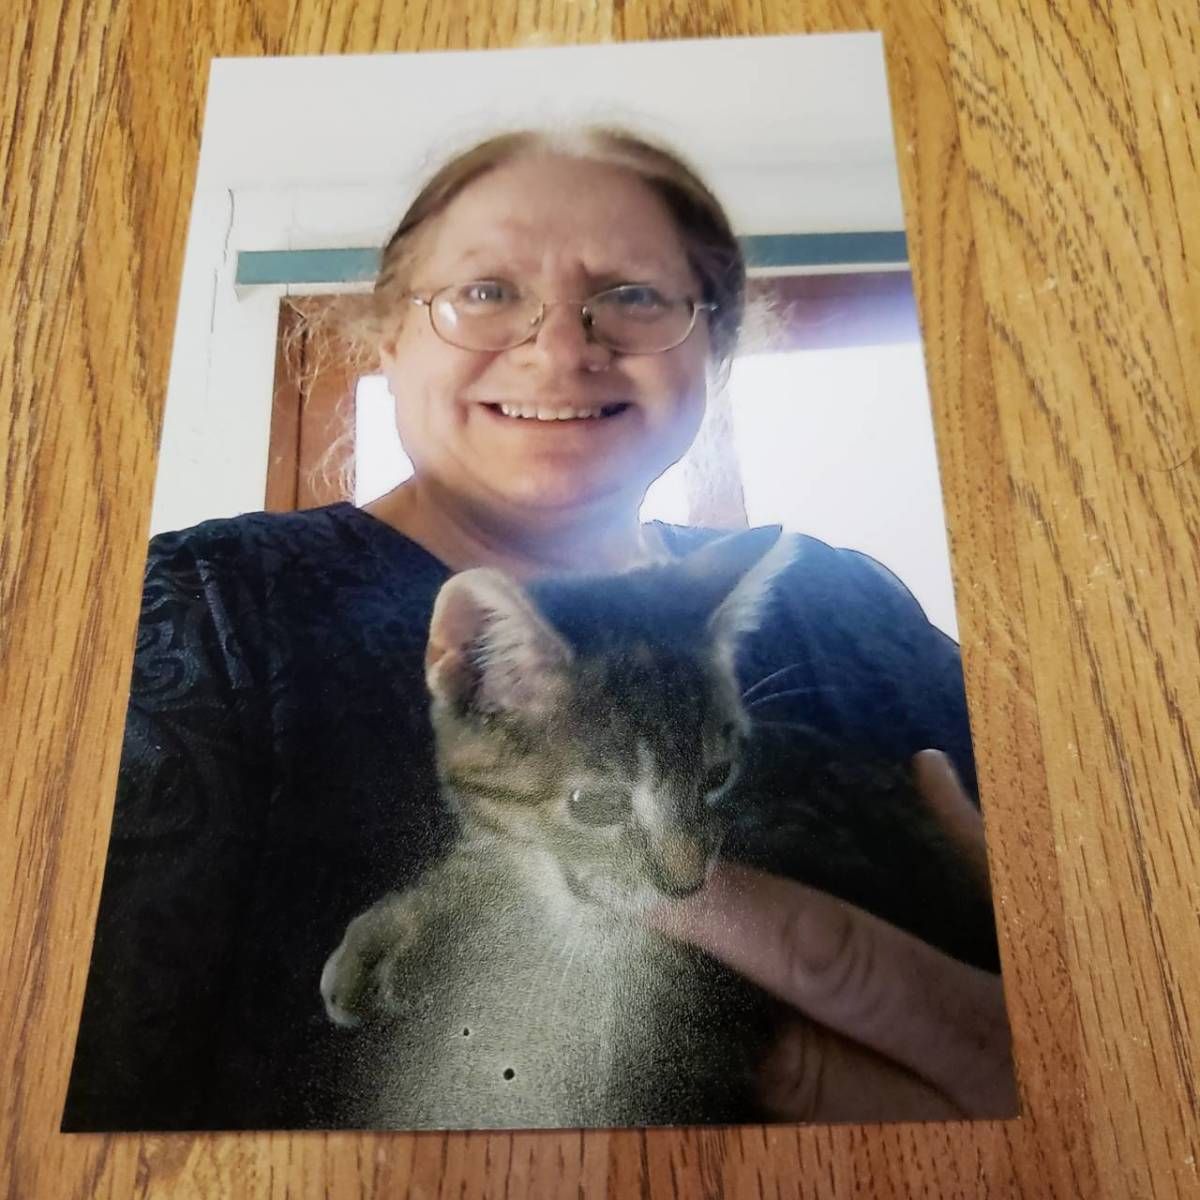 Connie with cat.  Taken in 2021